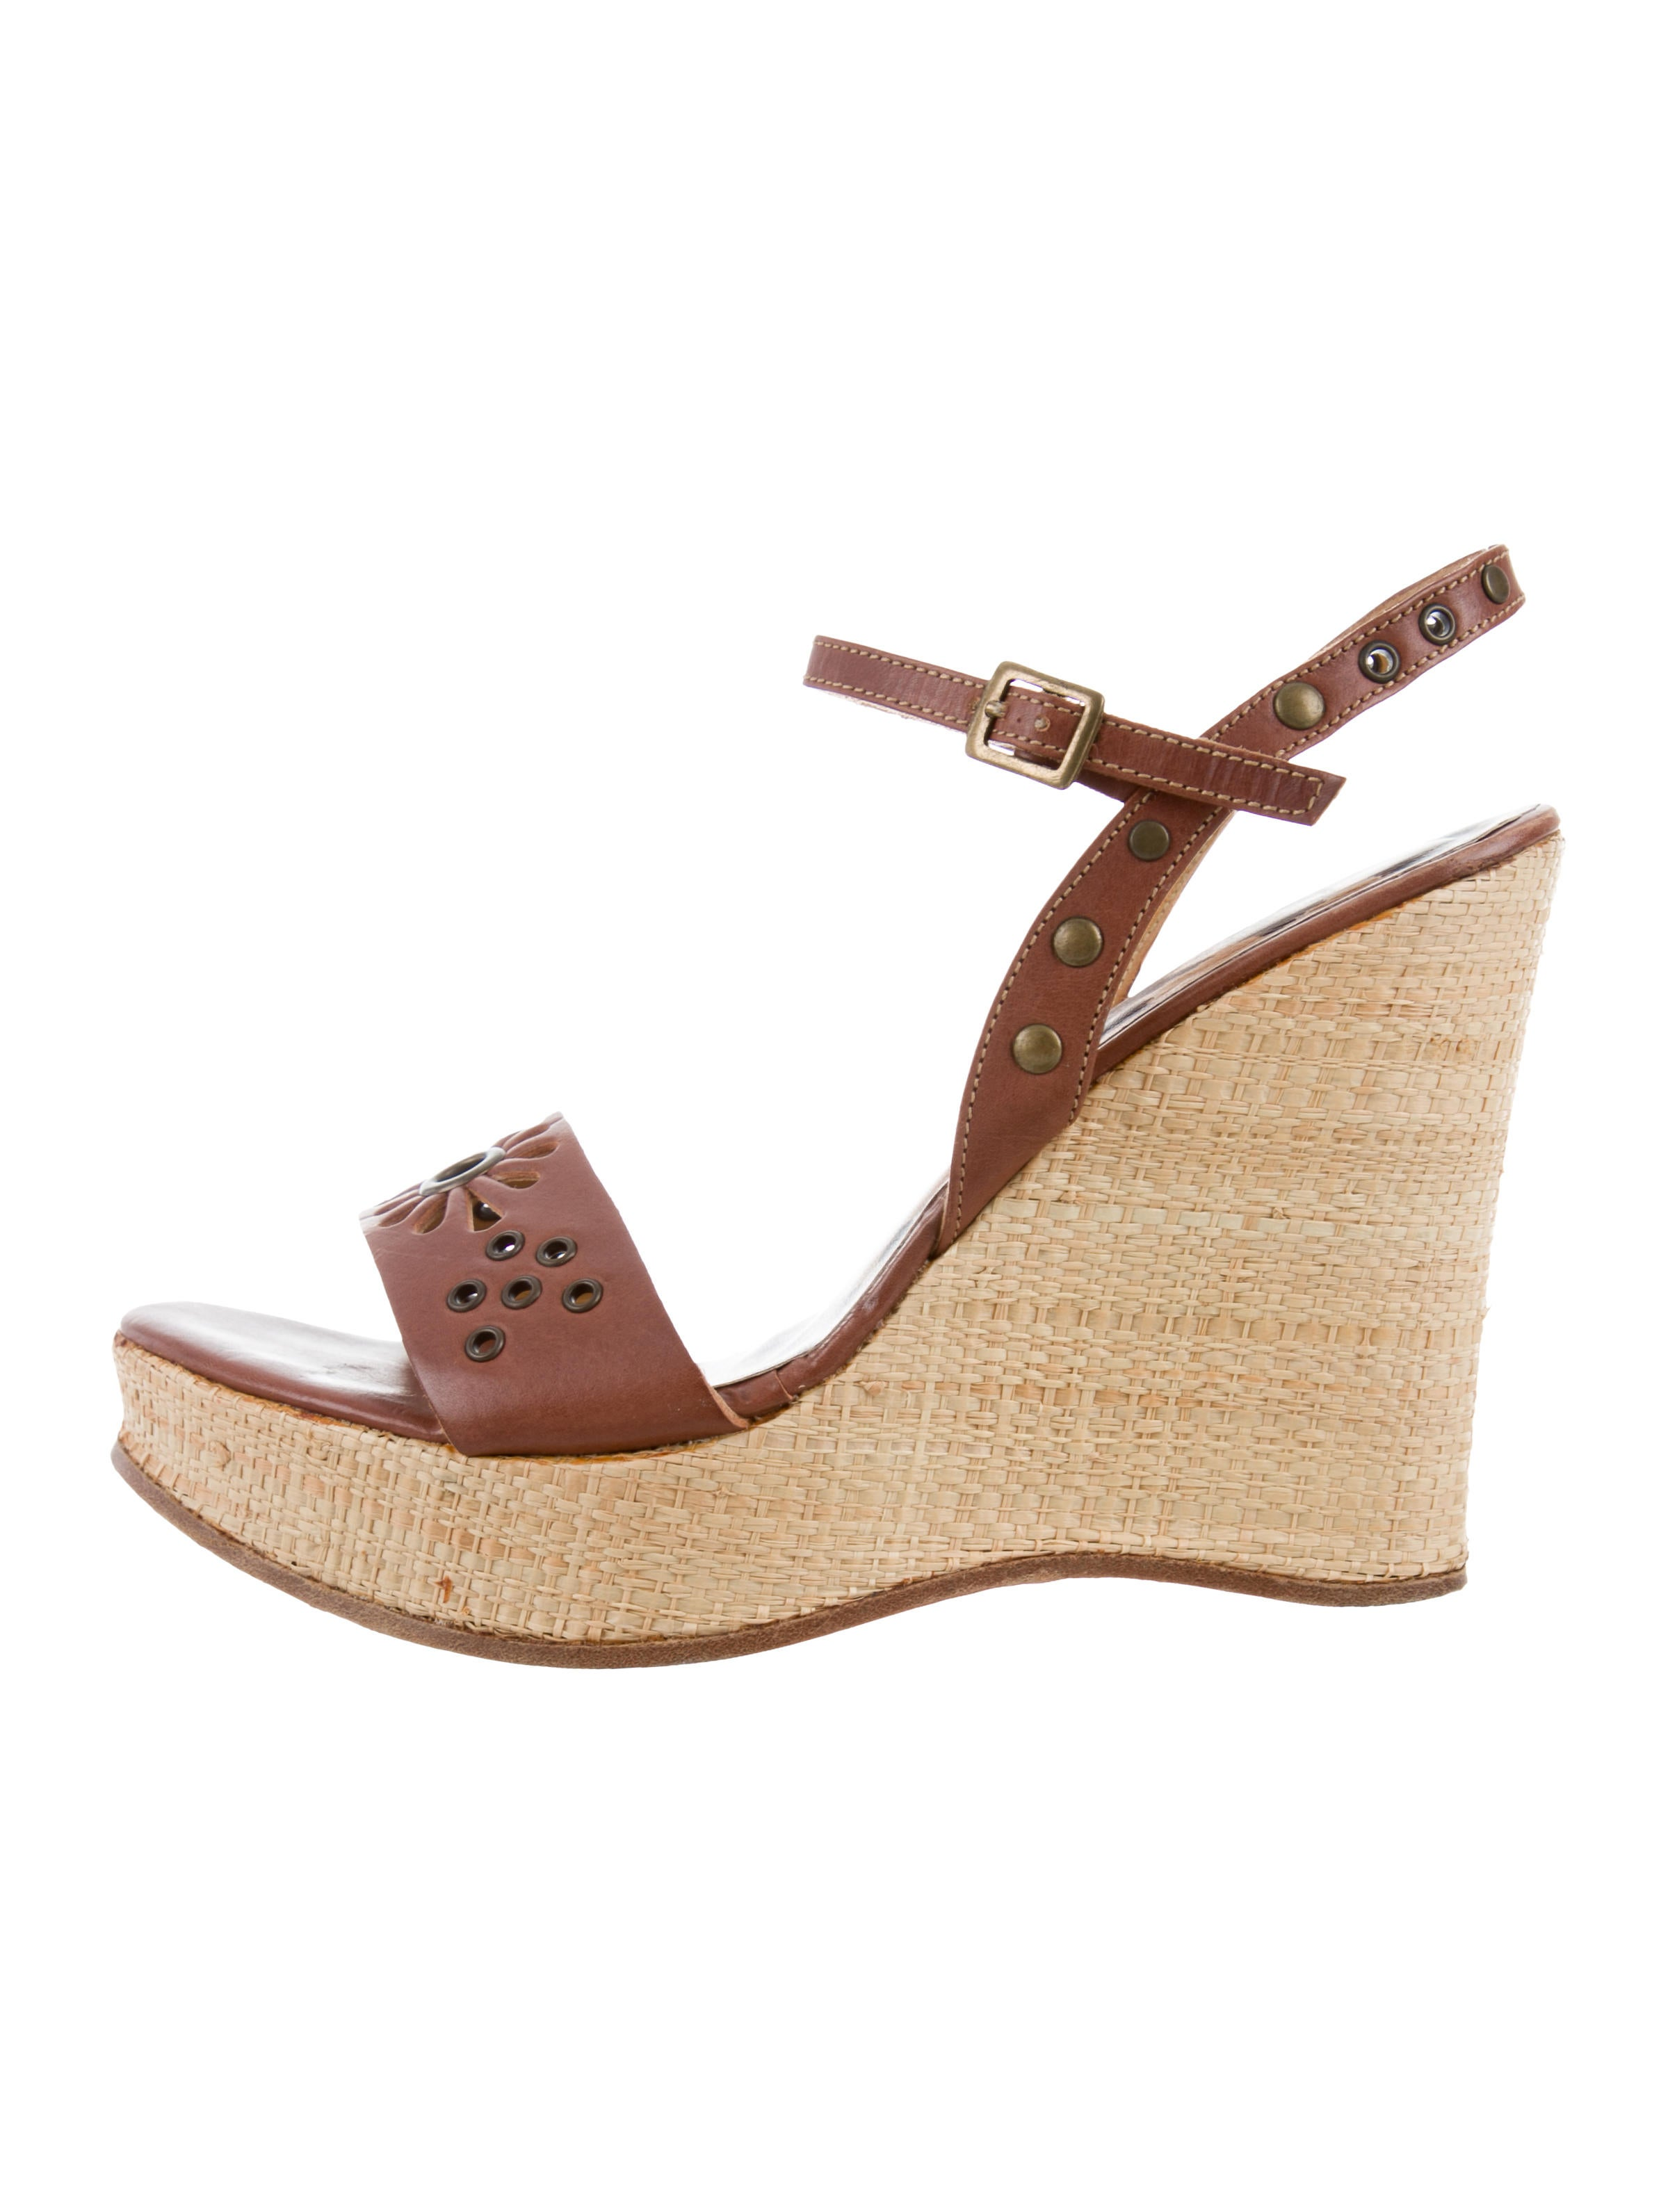 D&G Leather Wedge Sandals low cost online Md83q7m